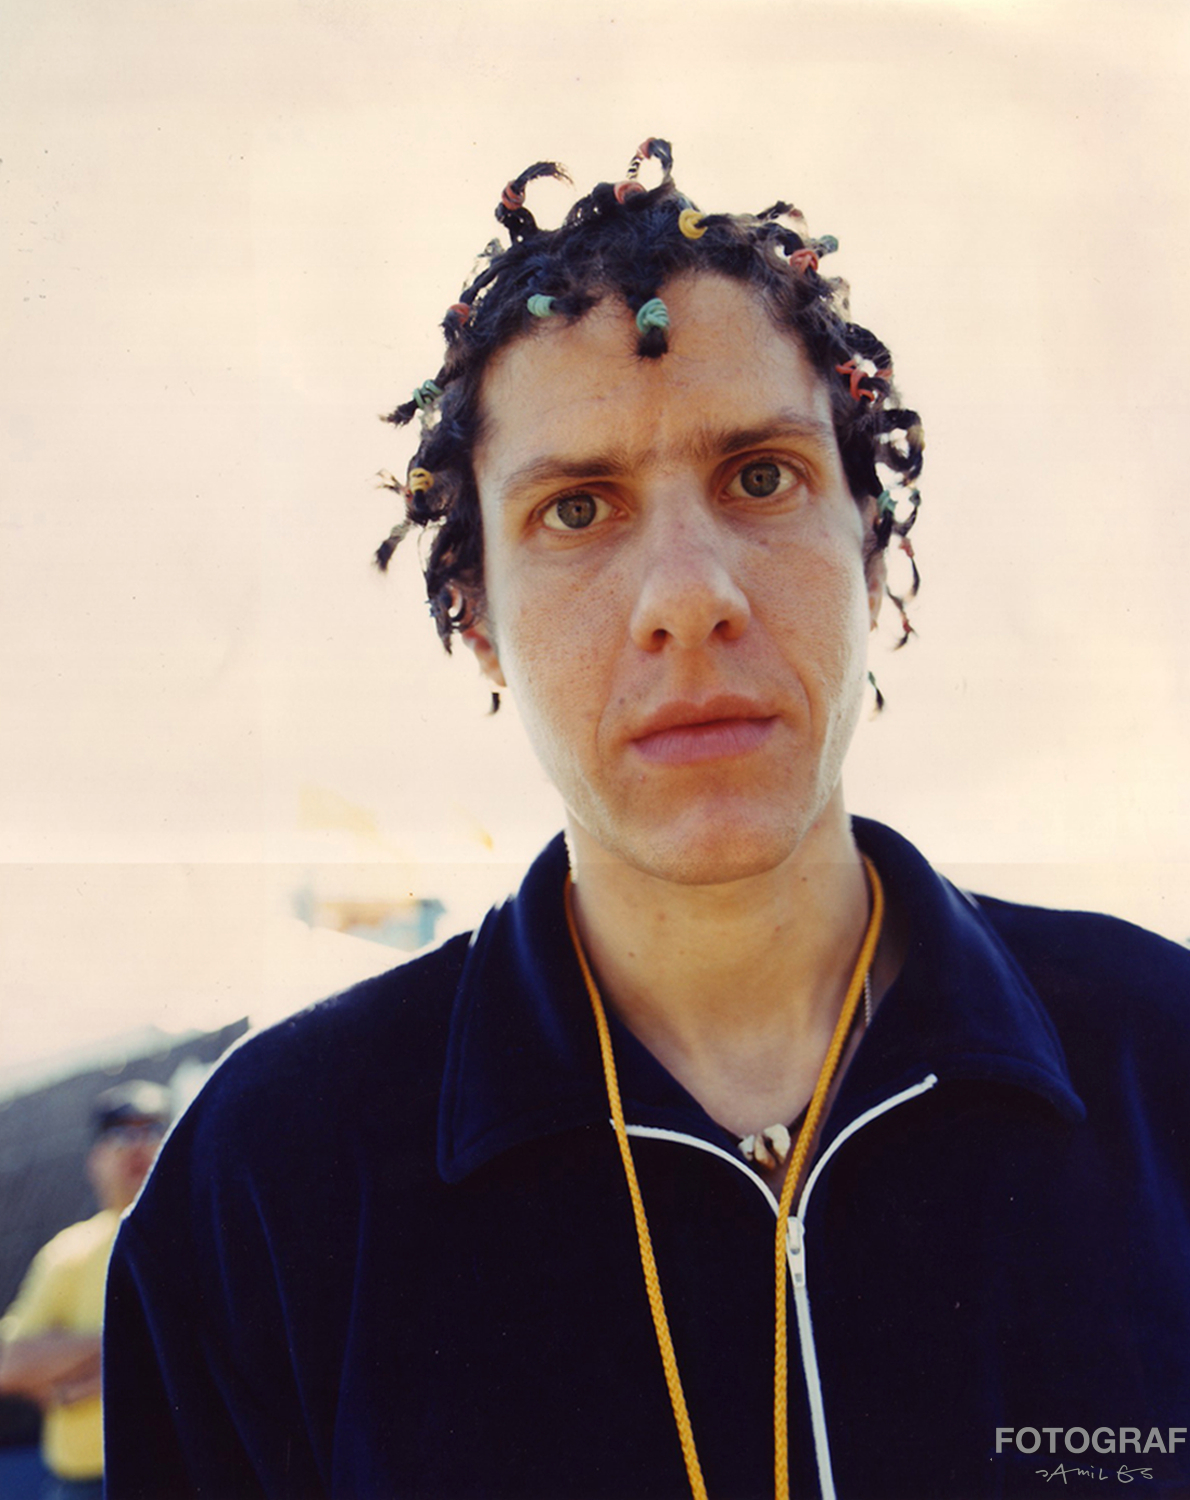 MIKE D